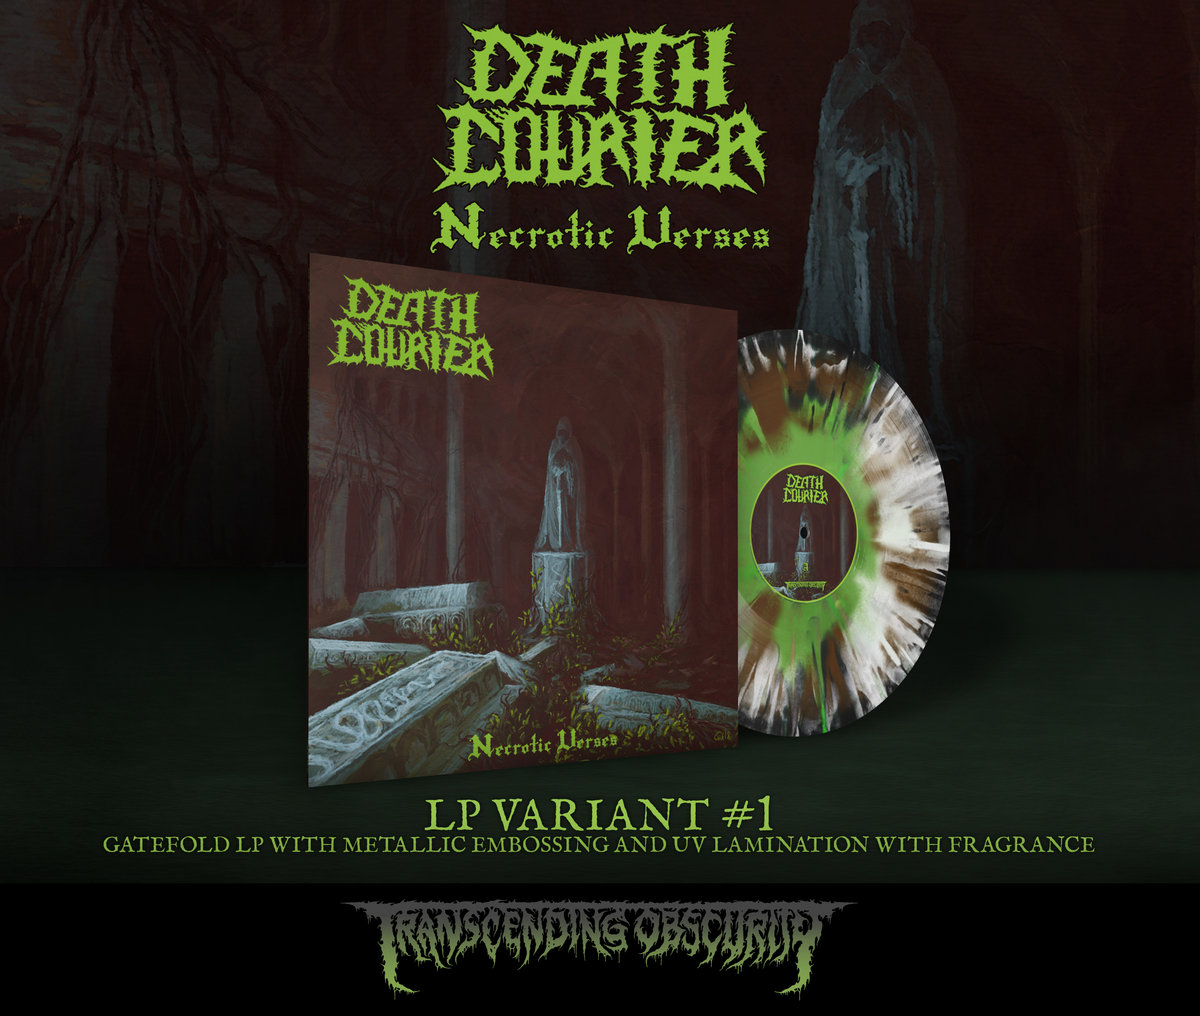 DEATH COURIER 3-LP Combo (All 3 LP Variants at a Discounted Price)